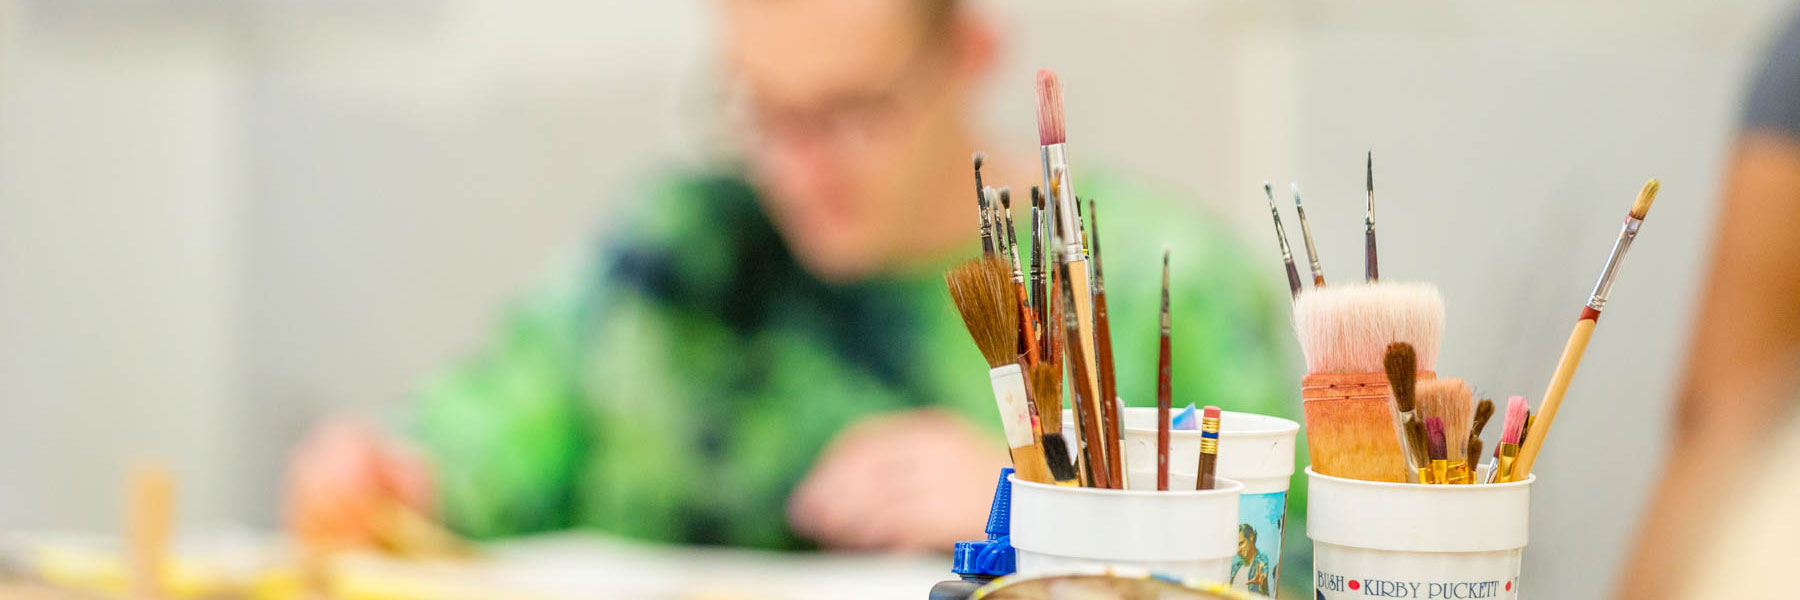 various sizes of paint brushes are sitting in cups while a blurred our student works in the background